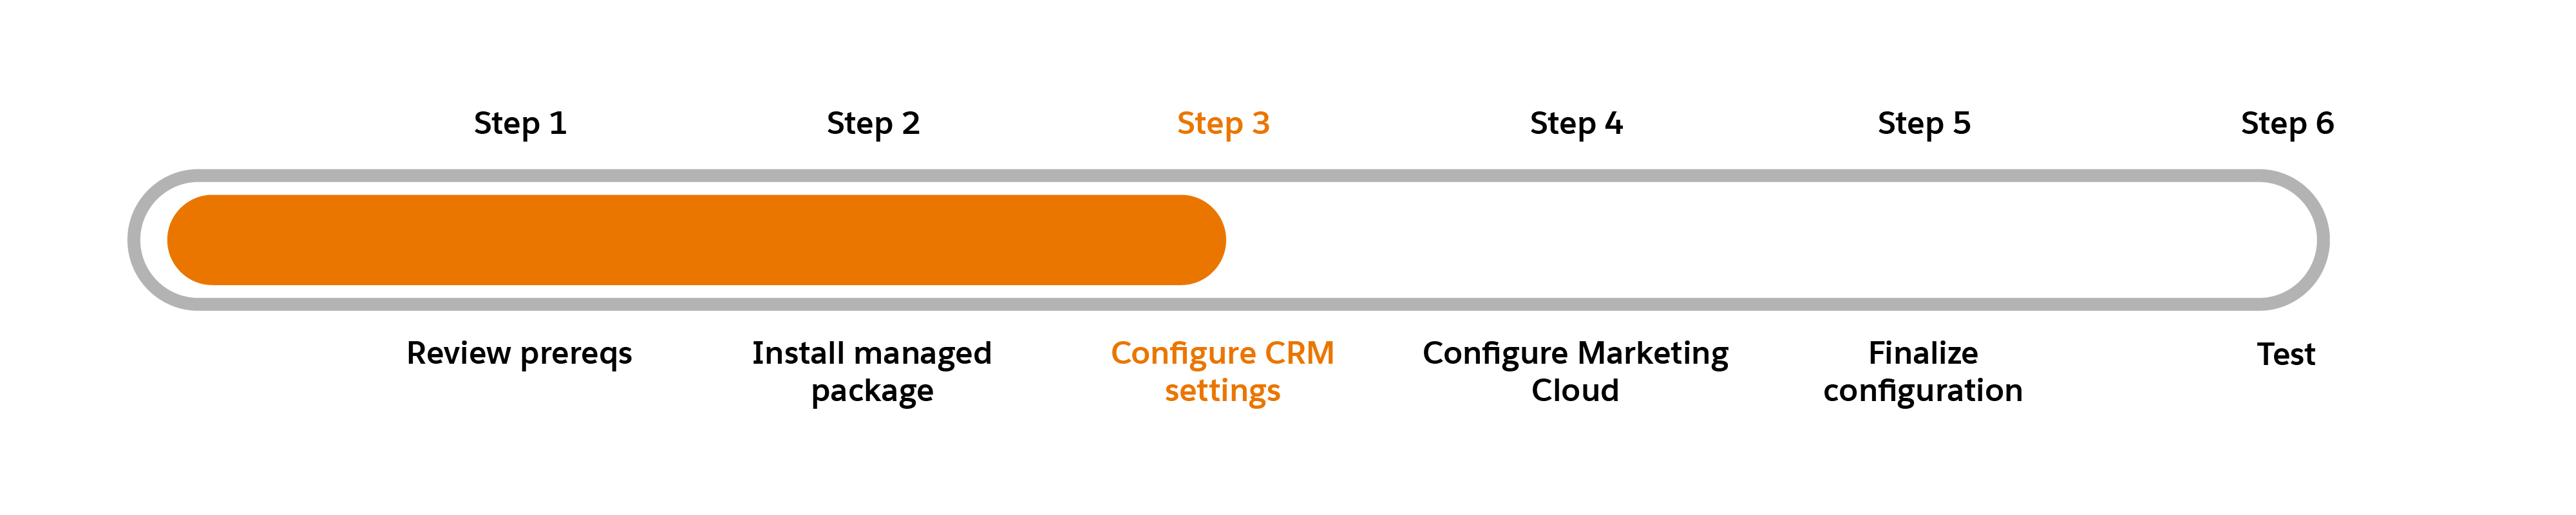 Progress chart with Step 3: Configure CRM settings highlighted.